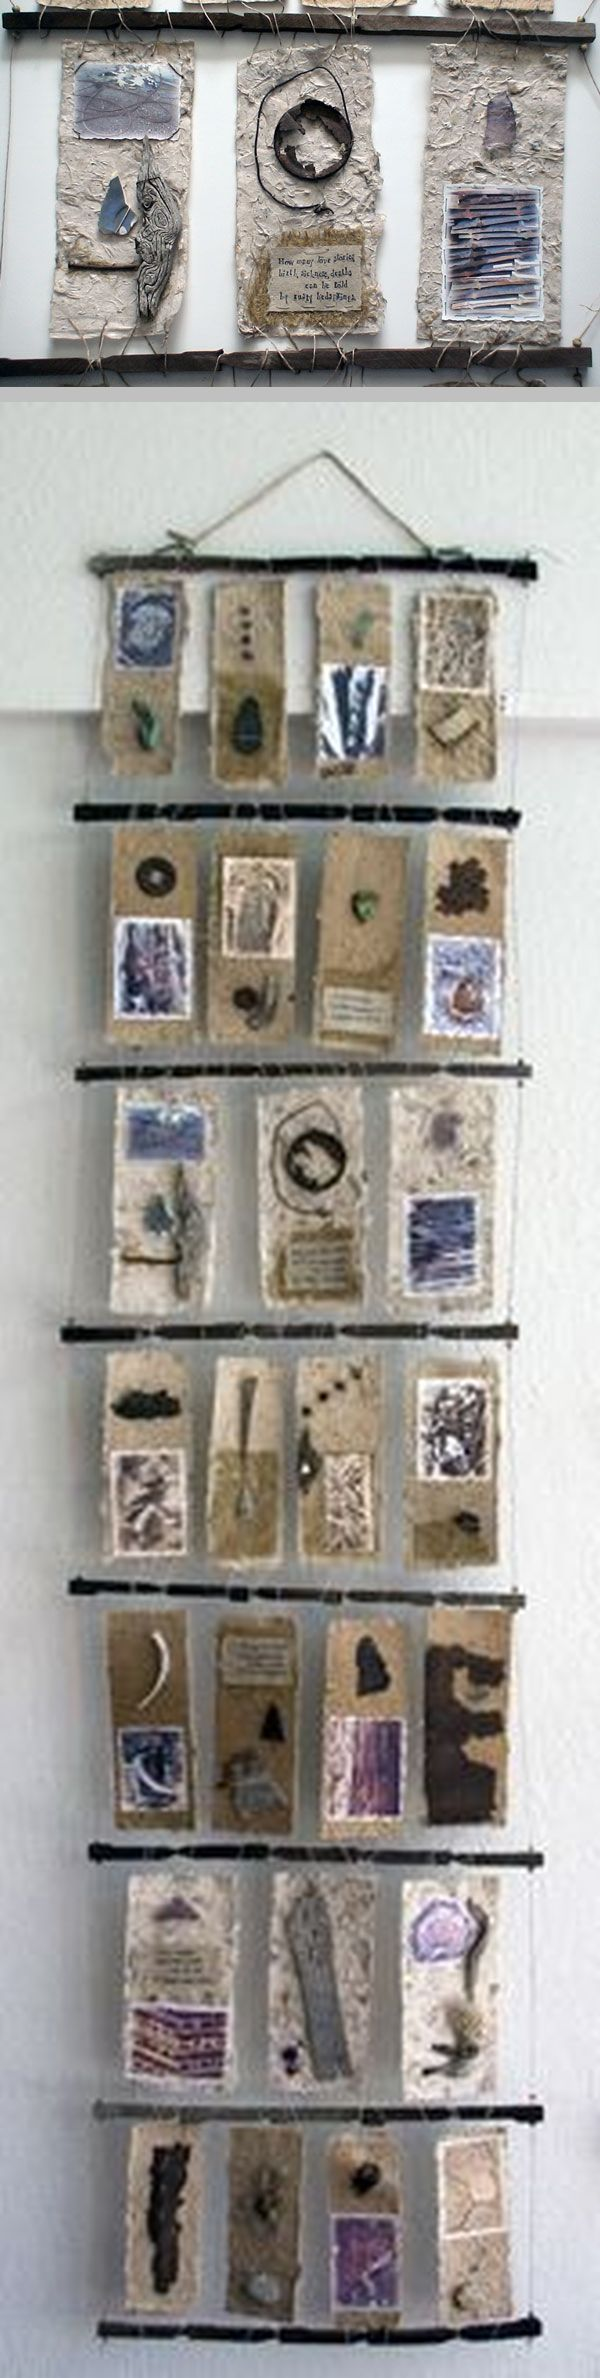 "Tracks Along The Arkansas ~ artist Mary-Ellen Campbell, 'Books From Natural Materials' series; 84"" x 24"" x 2"", mixed media & found objects   #art"